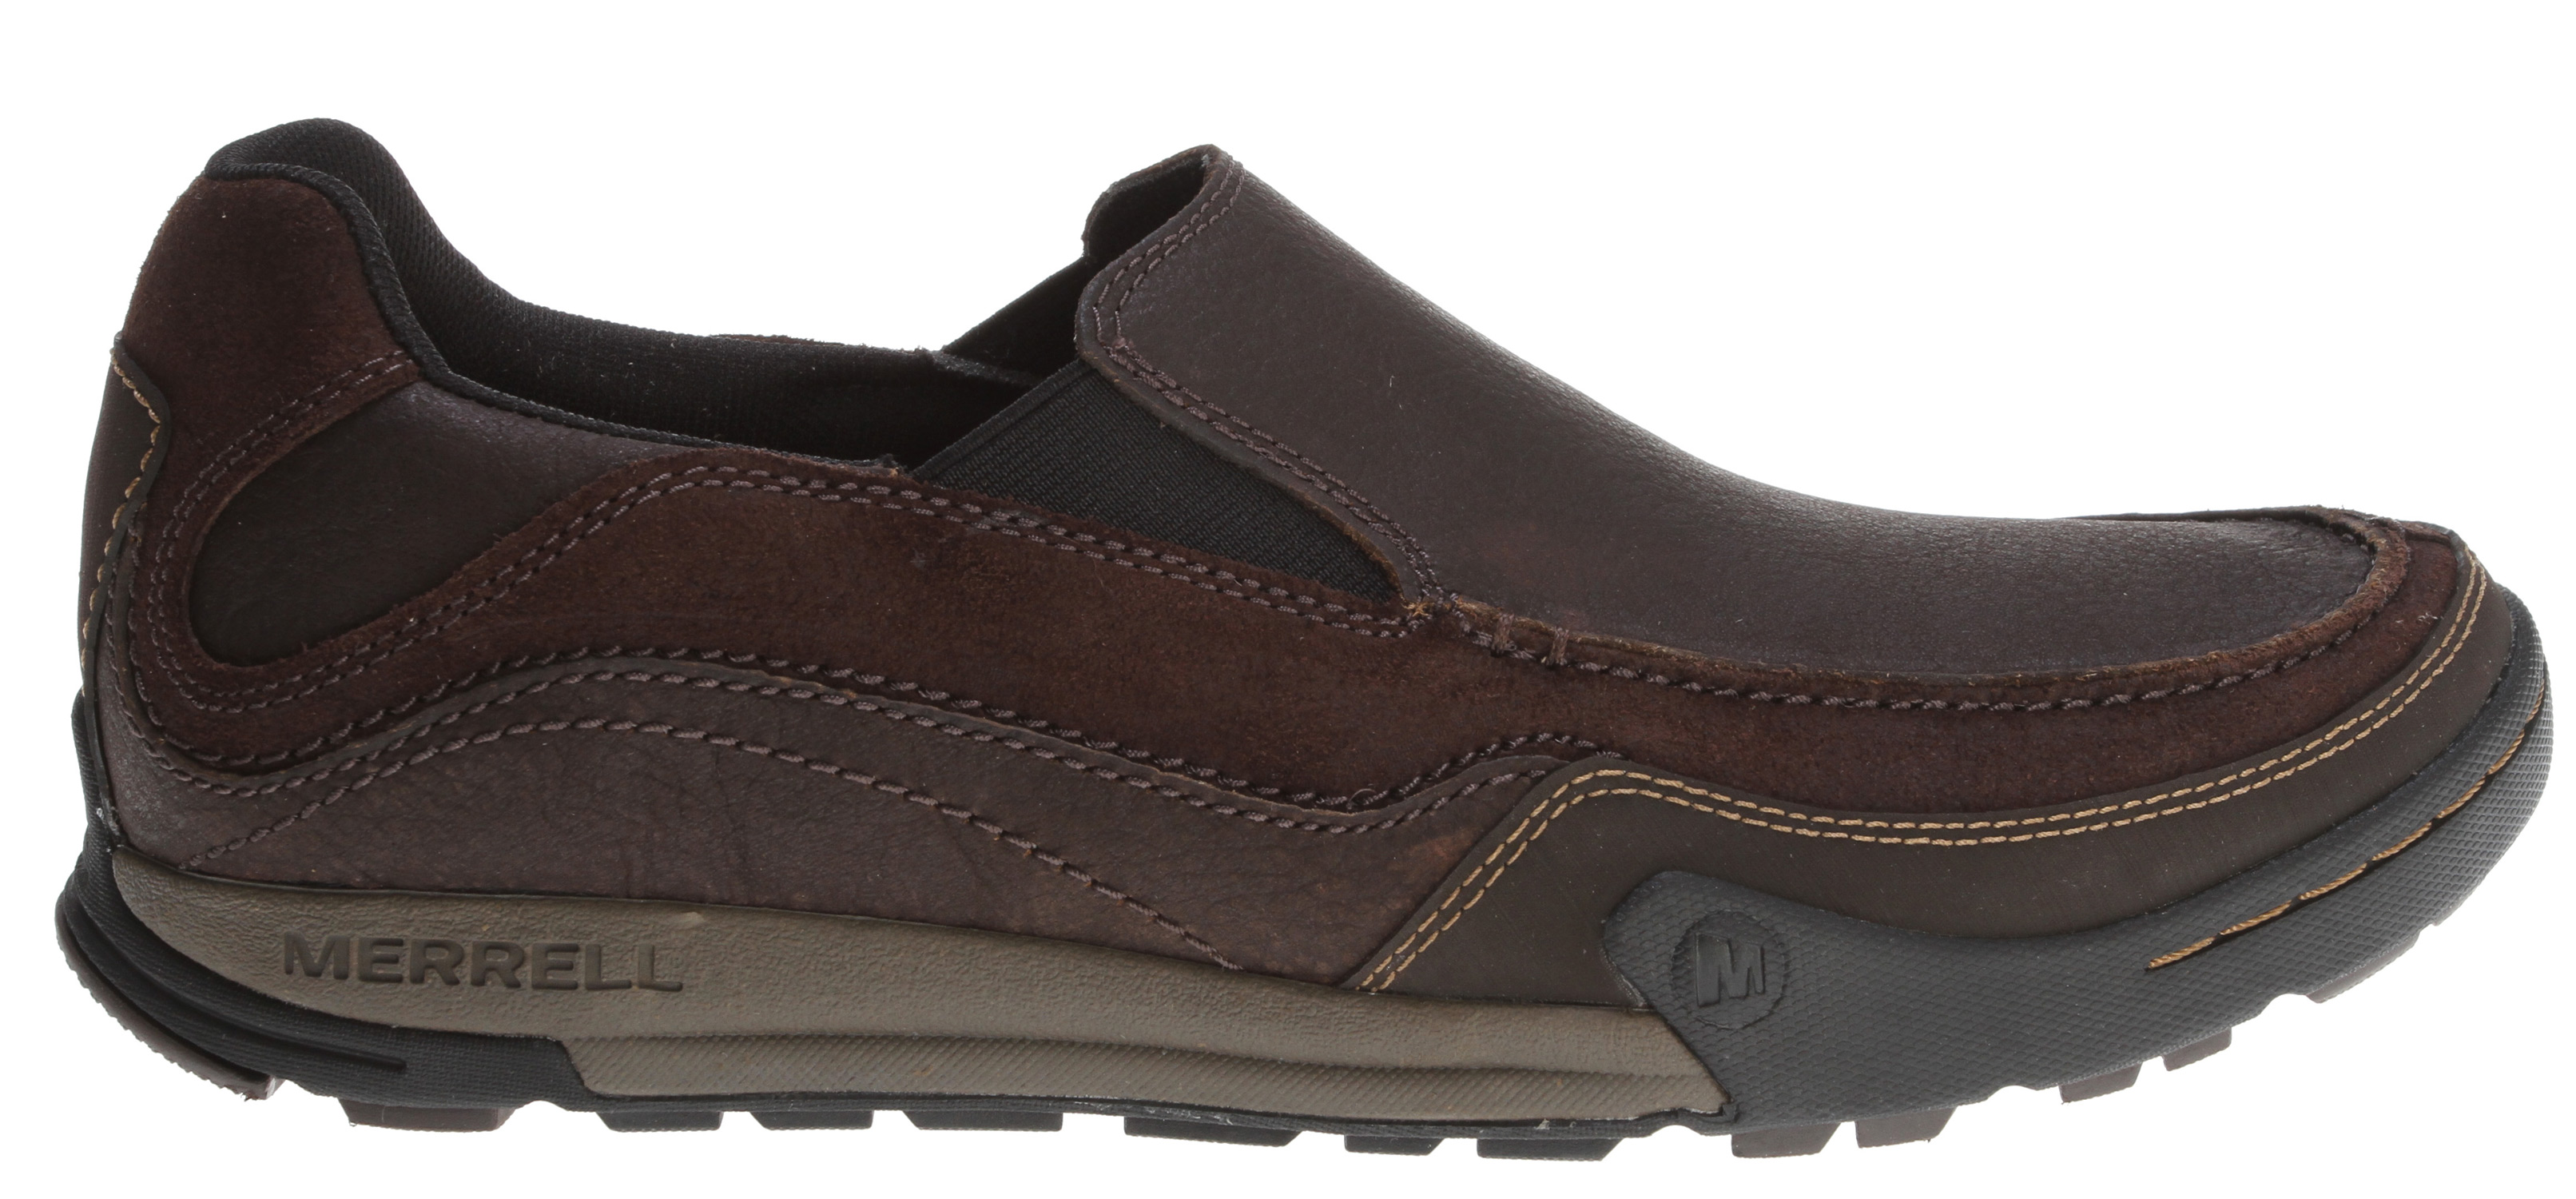 Camp and Hike For those who thrive on mountain air and activities, this hip moc is the perfect after hours, after sport shoe. Taking cues from outdoor sports we love, the cool suede upper and hip cushioned, supportive platform are durable and comfortable for hiking around, but look great with jeans around town, too.Key Features of the Merrell Mountain Moc Shoes: Strobel construction offers flexibility and comfort Nubuck leather and cow suede upper Mesh lining treated with Aegis® anti-microbial solution EVA anatomical footbed treated with Aegis® anti-microbial solution 2 mm EVA insole for comfort and shock absorption Molded nylon arch shank Compression molded EVA footframe for stability and comfort Merrell Air Cushion in the heel absorbs shock and adds stability Merrell sole sticky rubber 3.5 mm sole lug depth Men's Weight: 1 lb 10ozs - $65.95